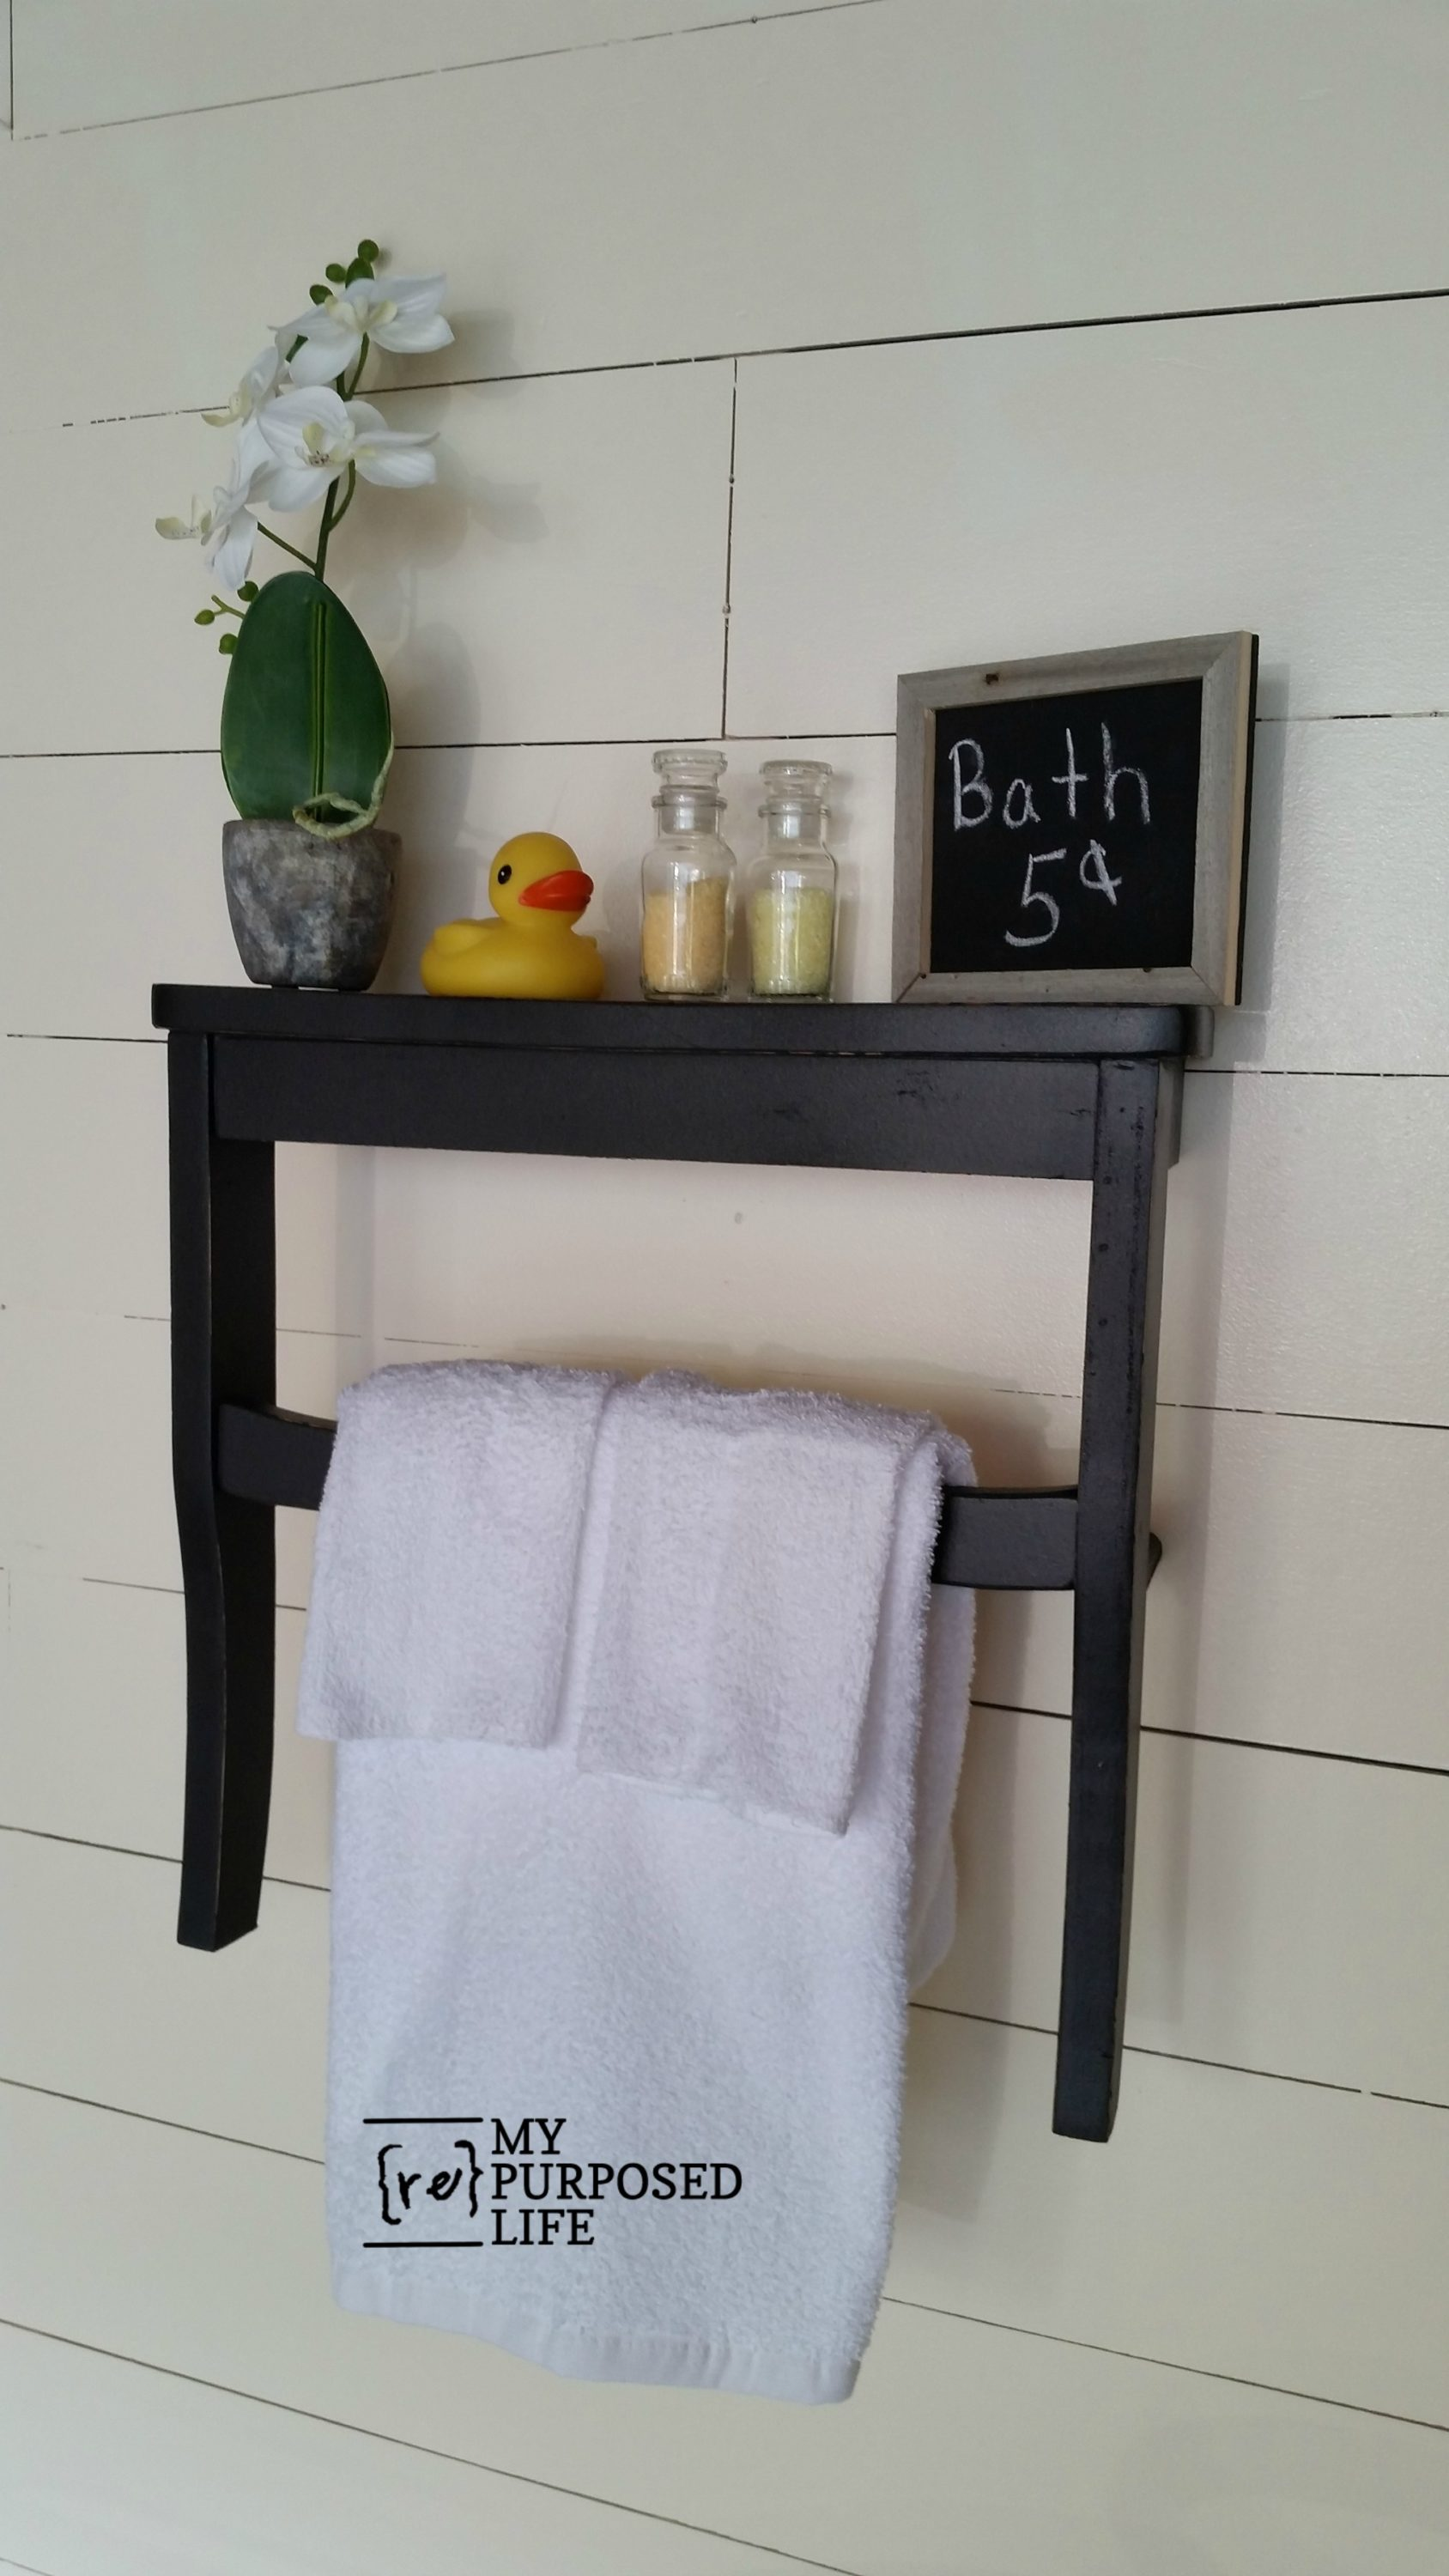 Chair Seat Wall Shelf - My Repurposed Life®